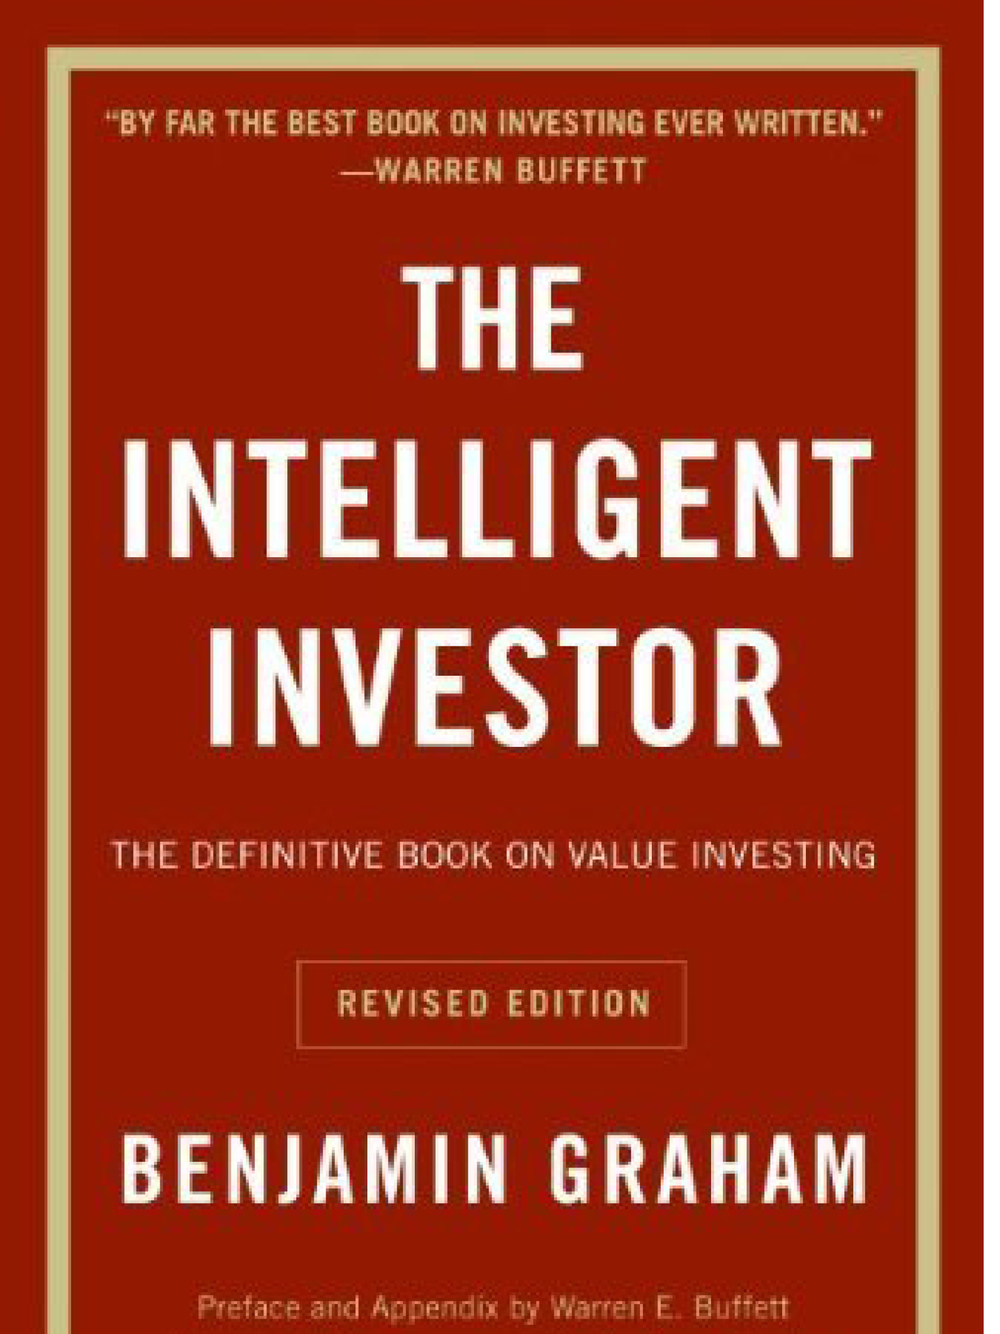 The Intelligent Investor. Benjamin Graham 2003 (Revised Edition)